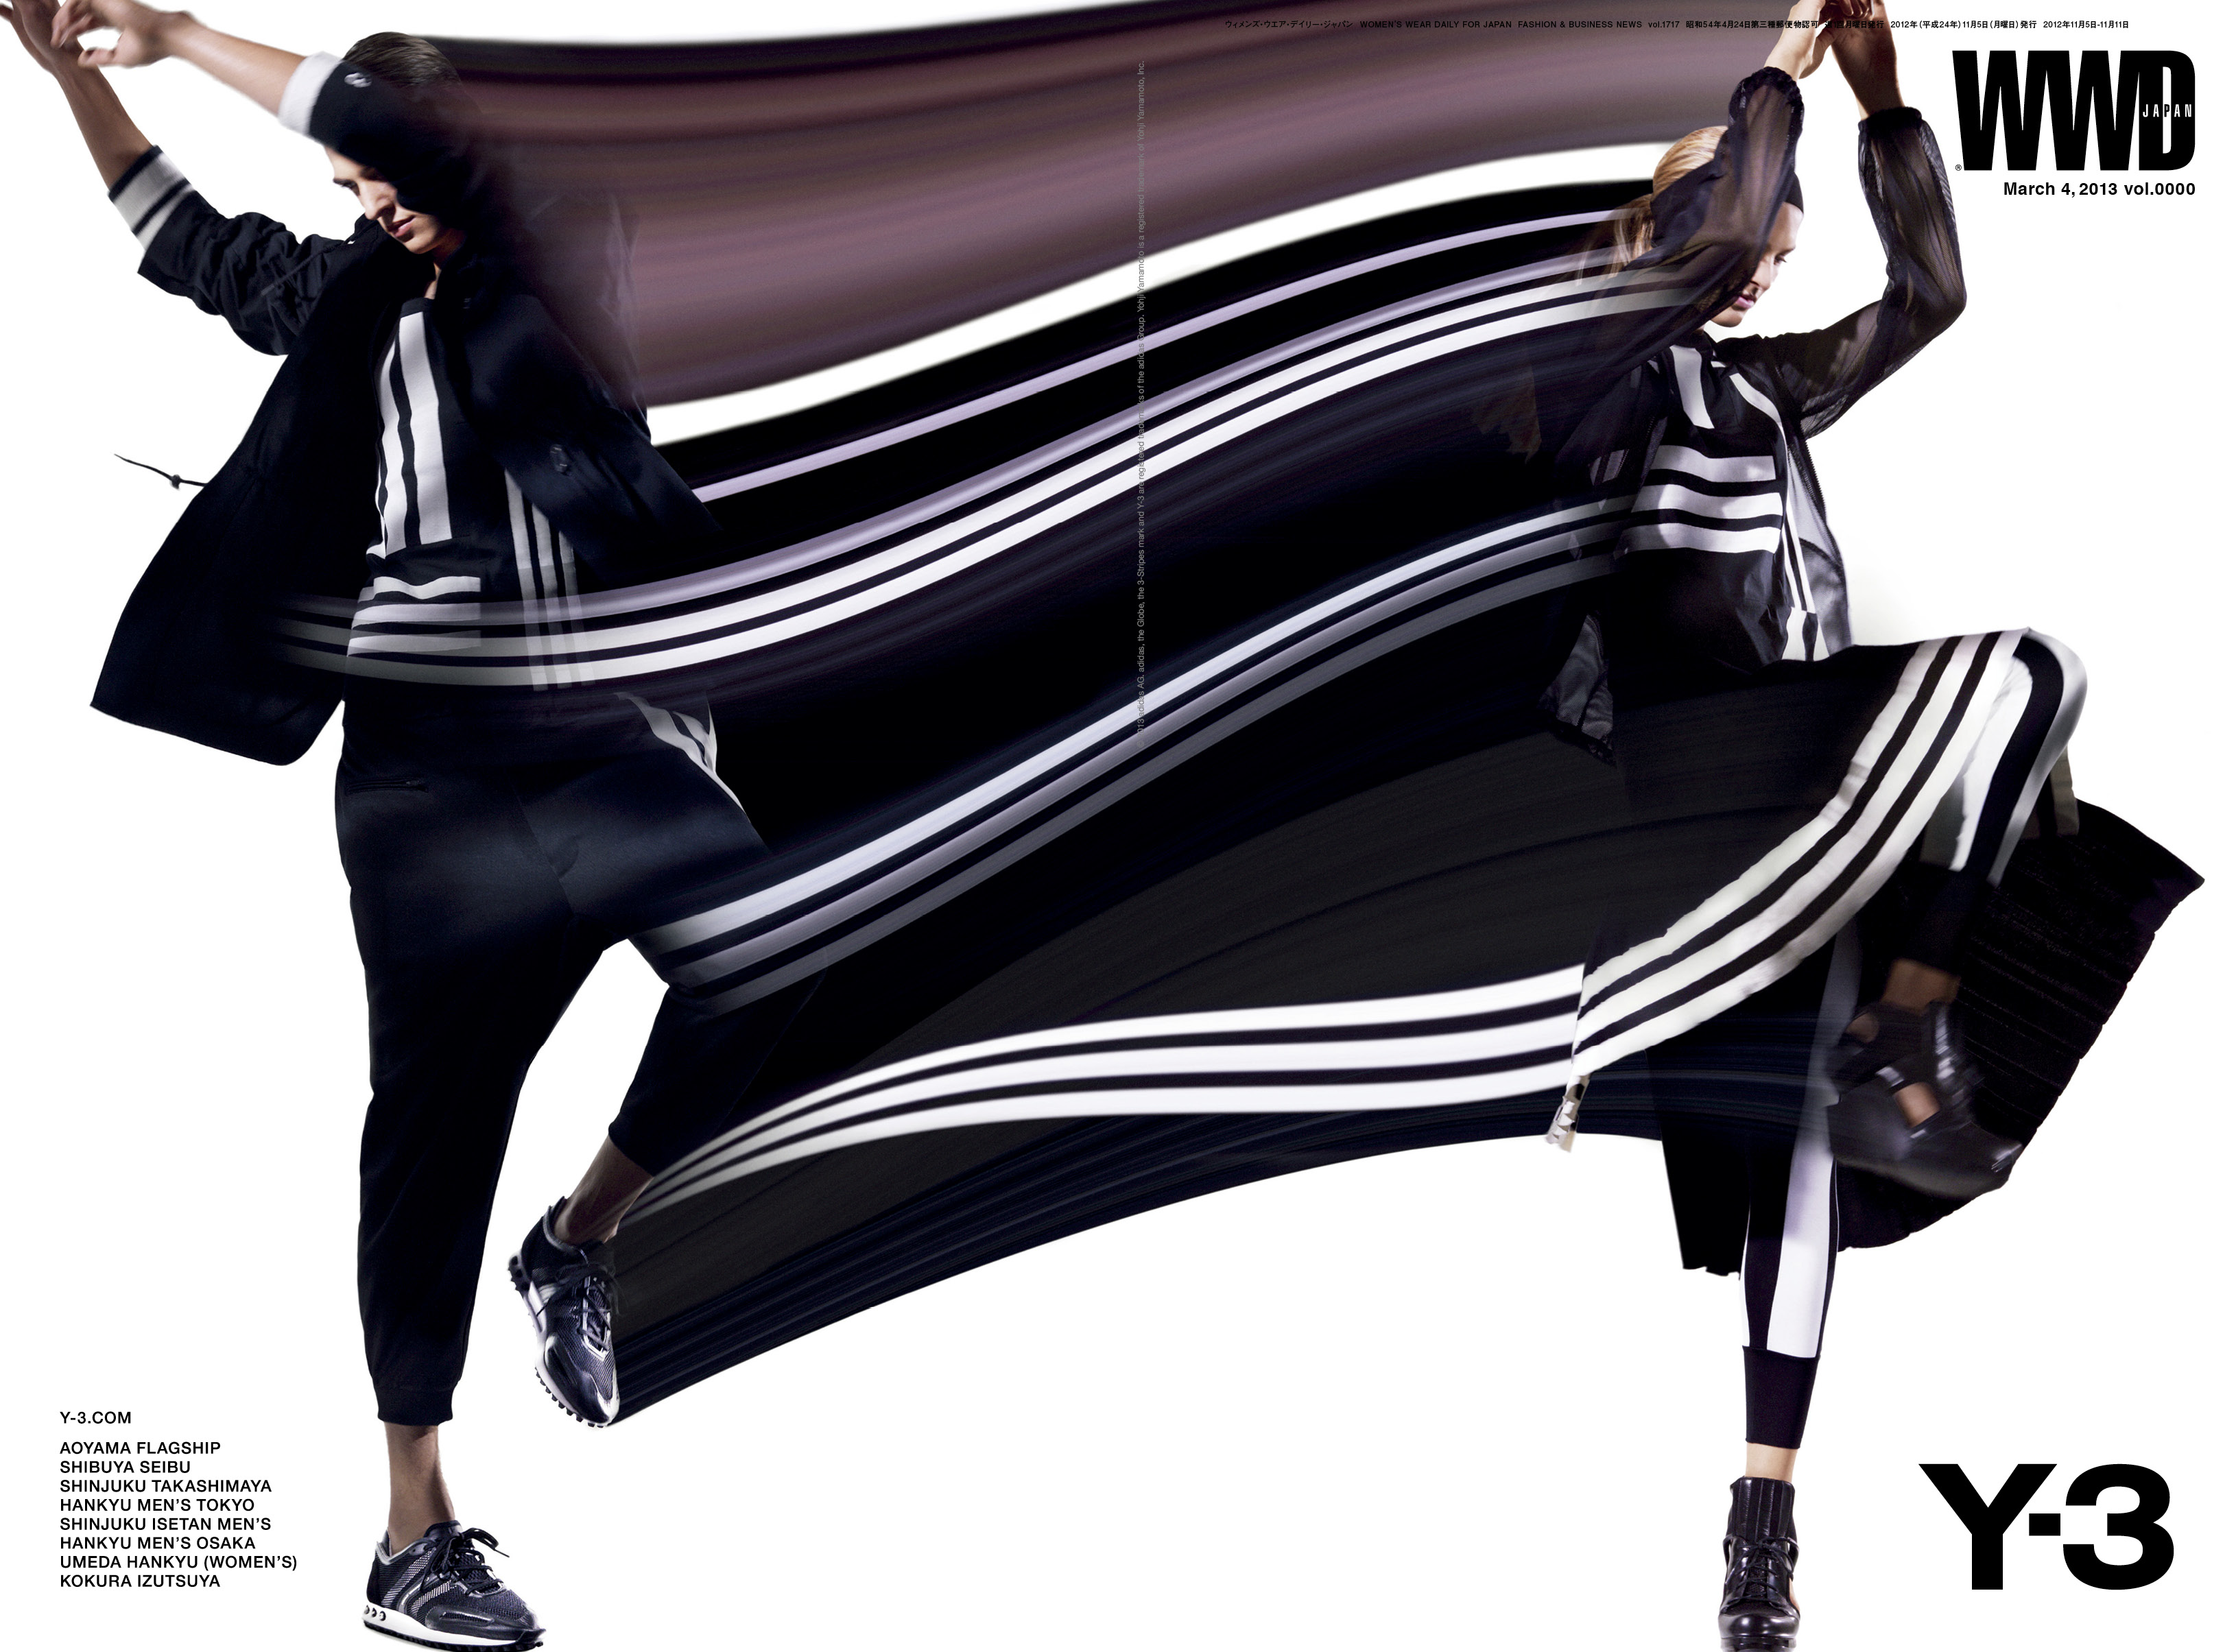 y-3_cover on_layout